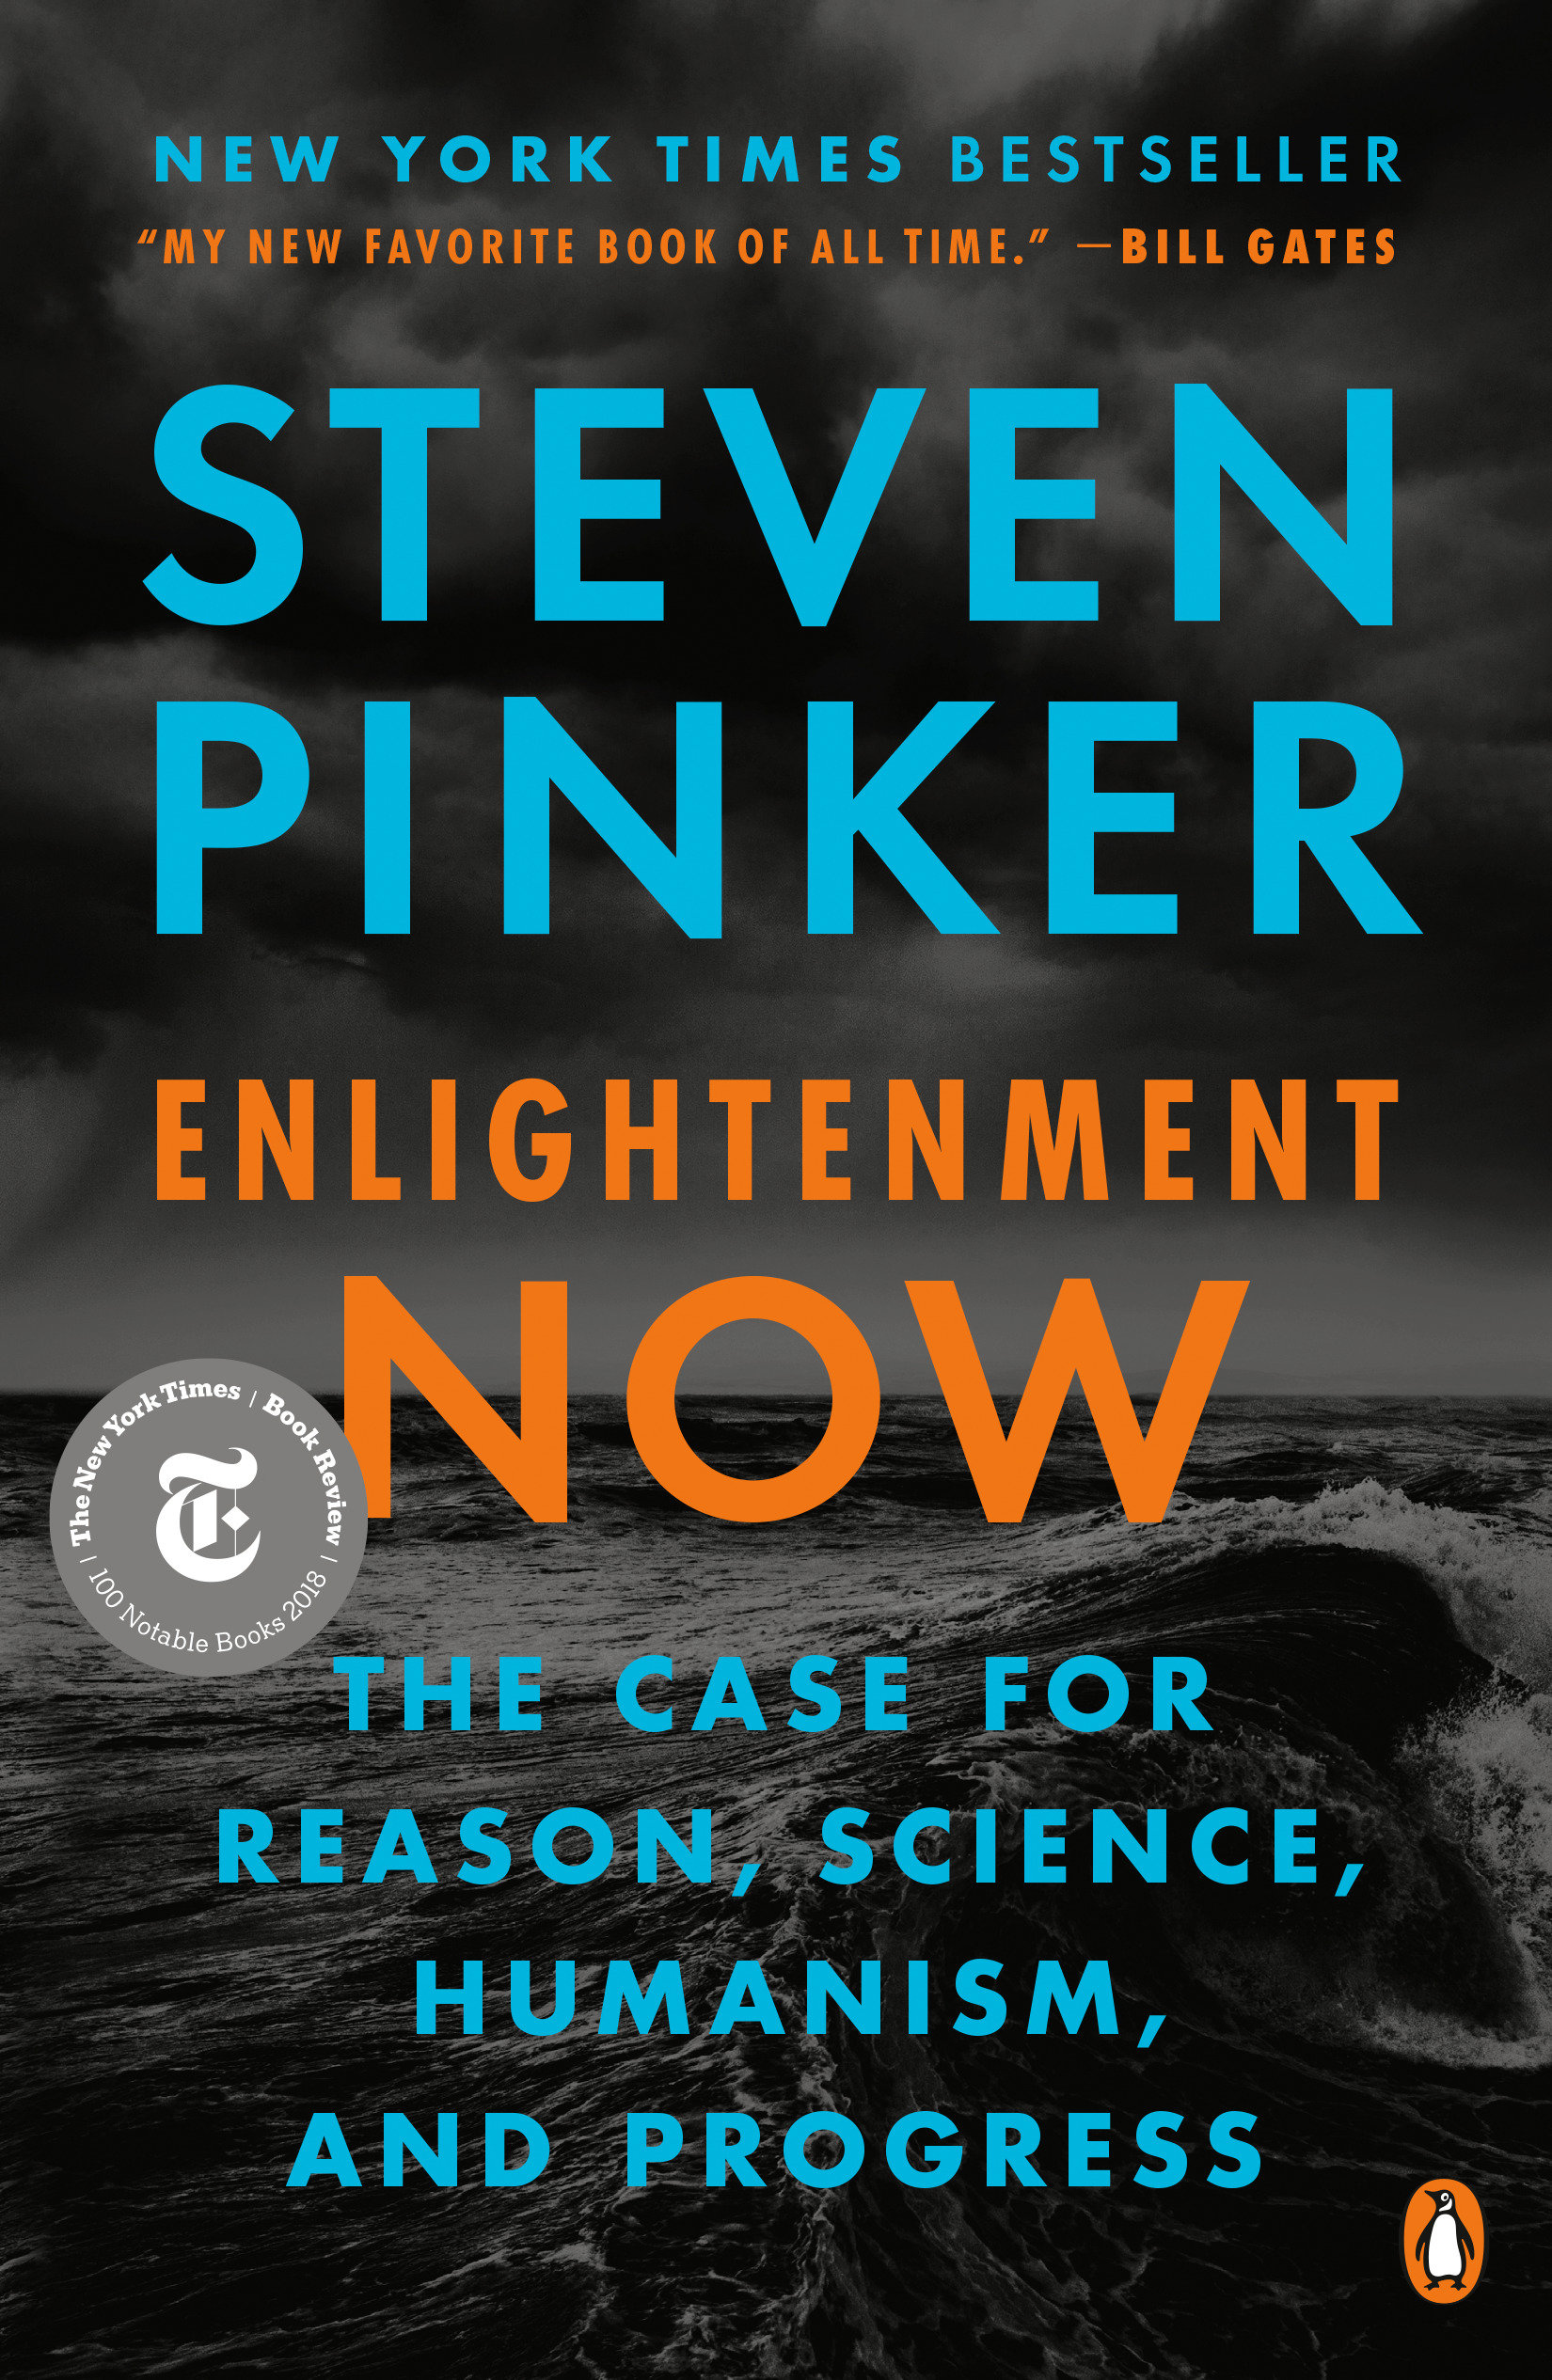 Enlightenment Now The Case for Reason, Science, Humanism, and Progress